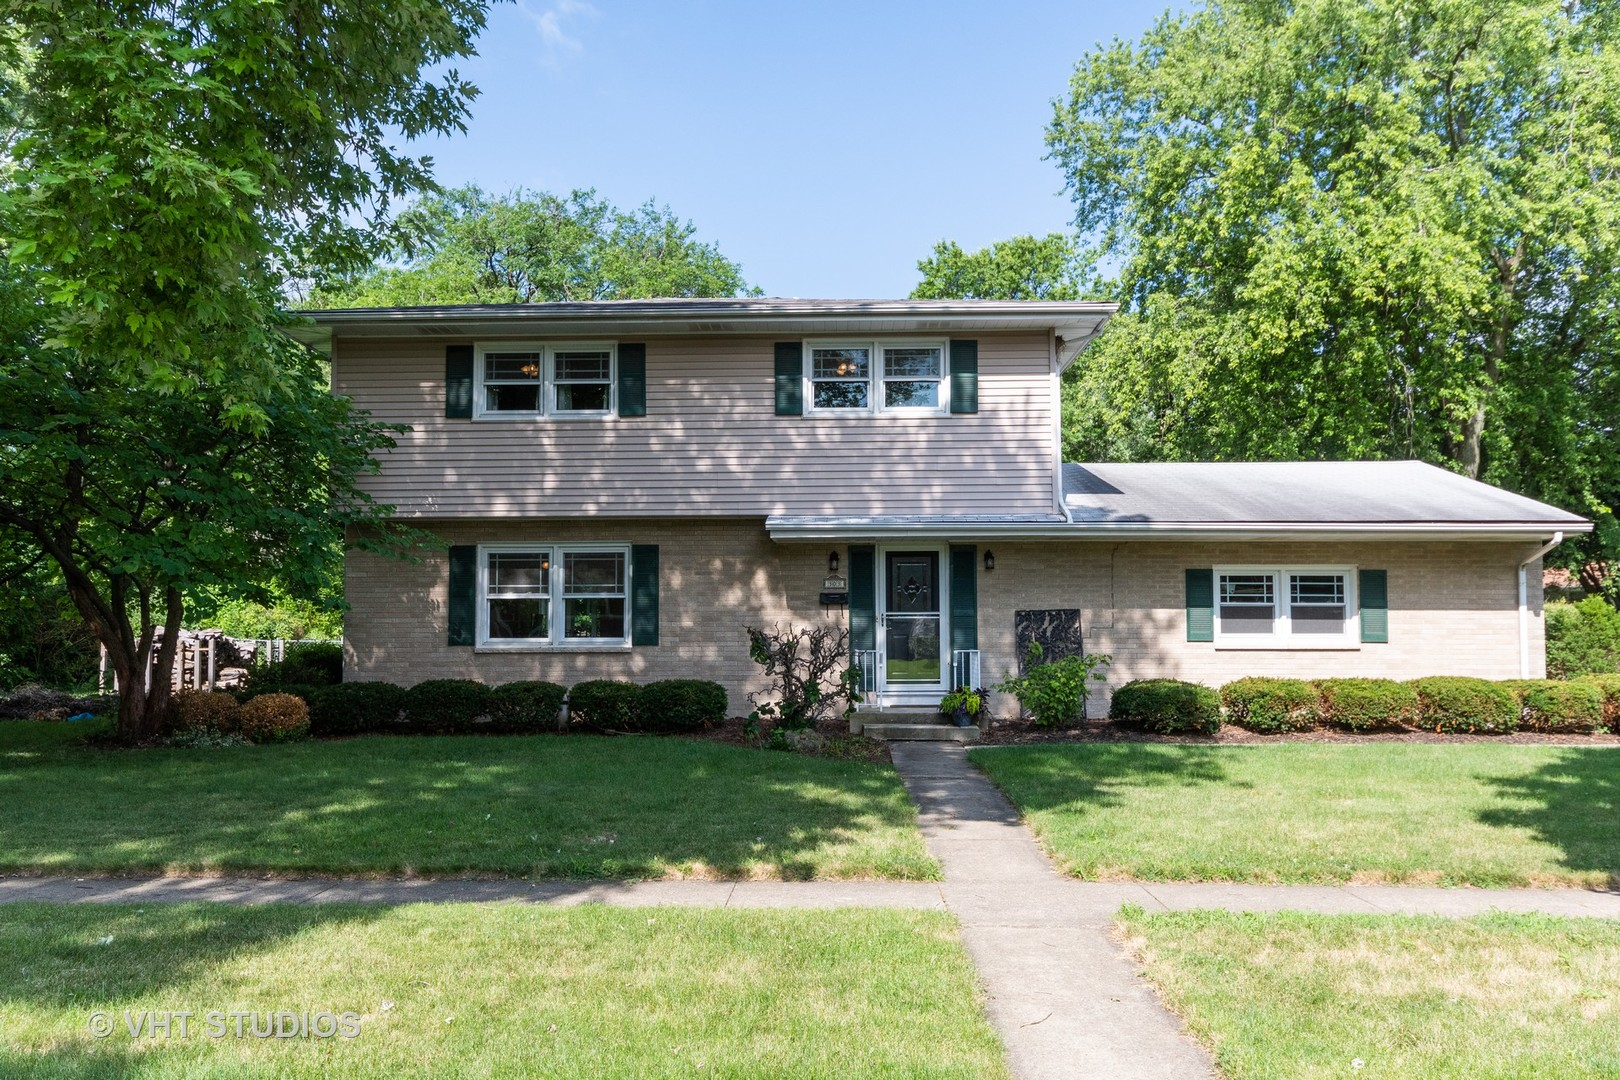 Photo for 303 S 15th Street, ST. CHARLES, IL 60174 (MLS # 10441208)